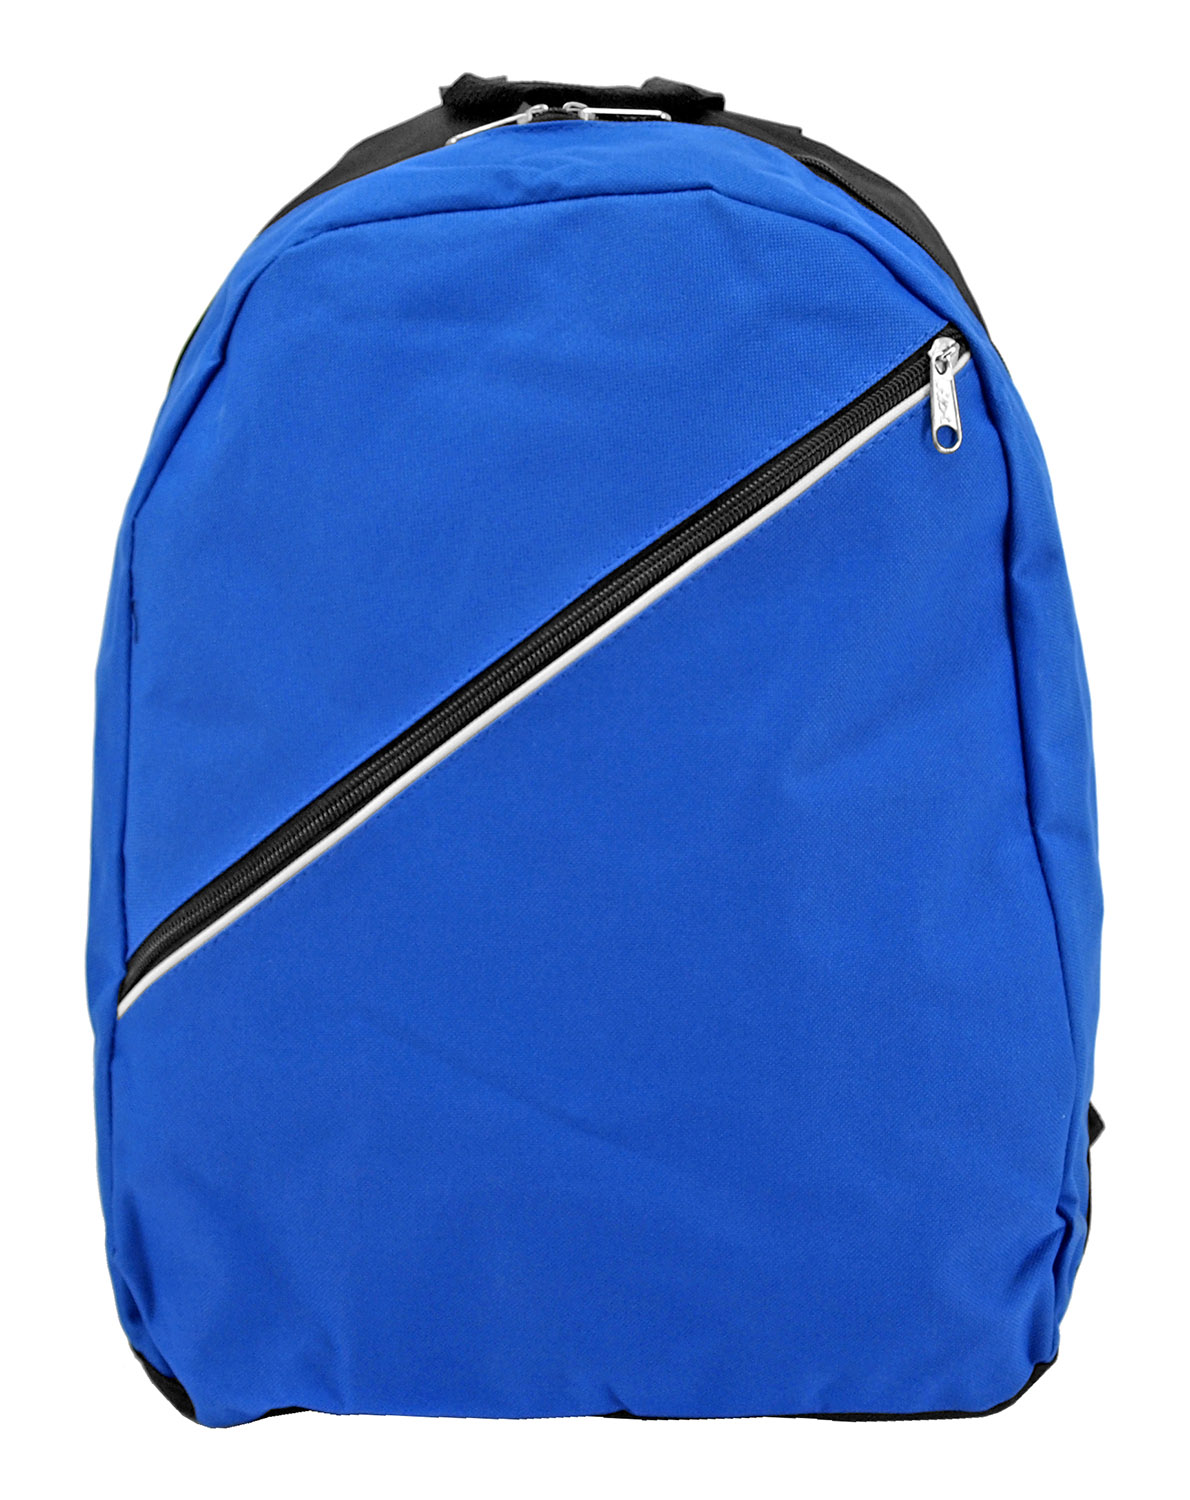 Back to School Backpack - Blue